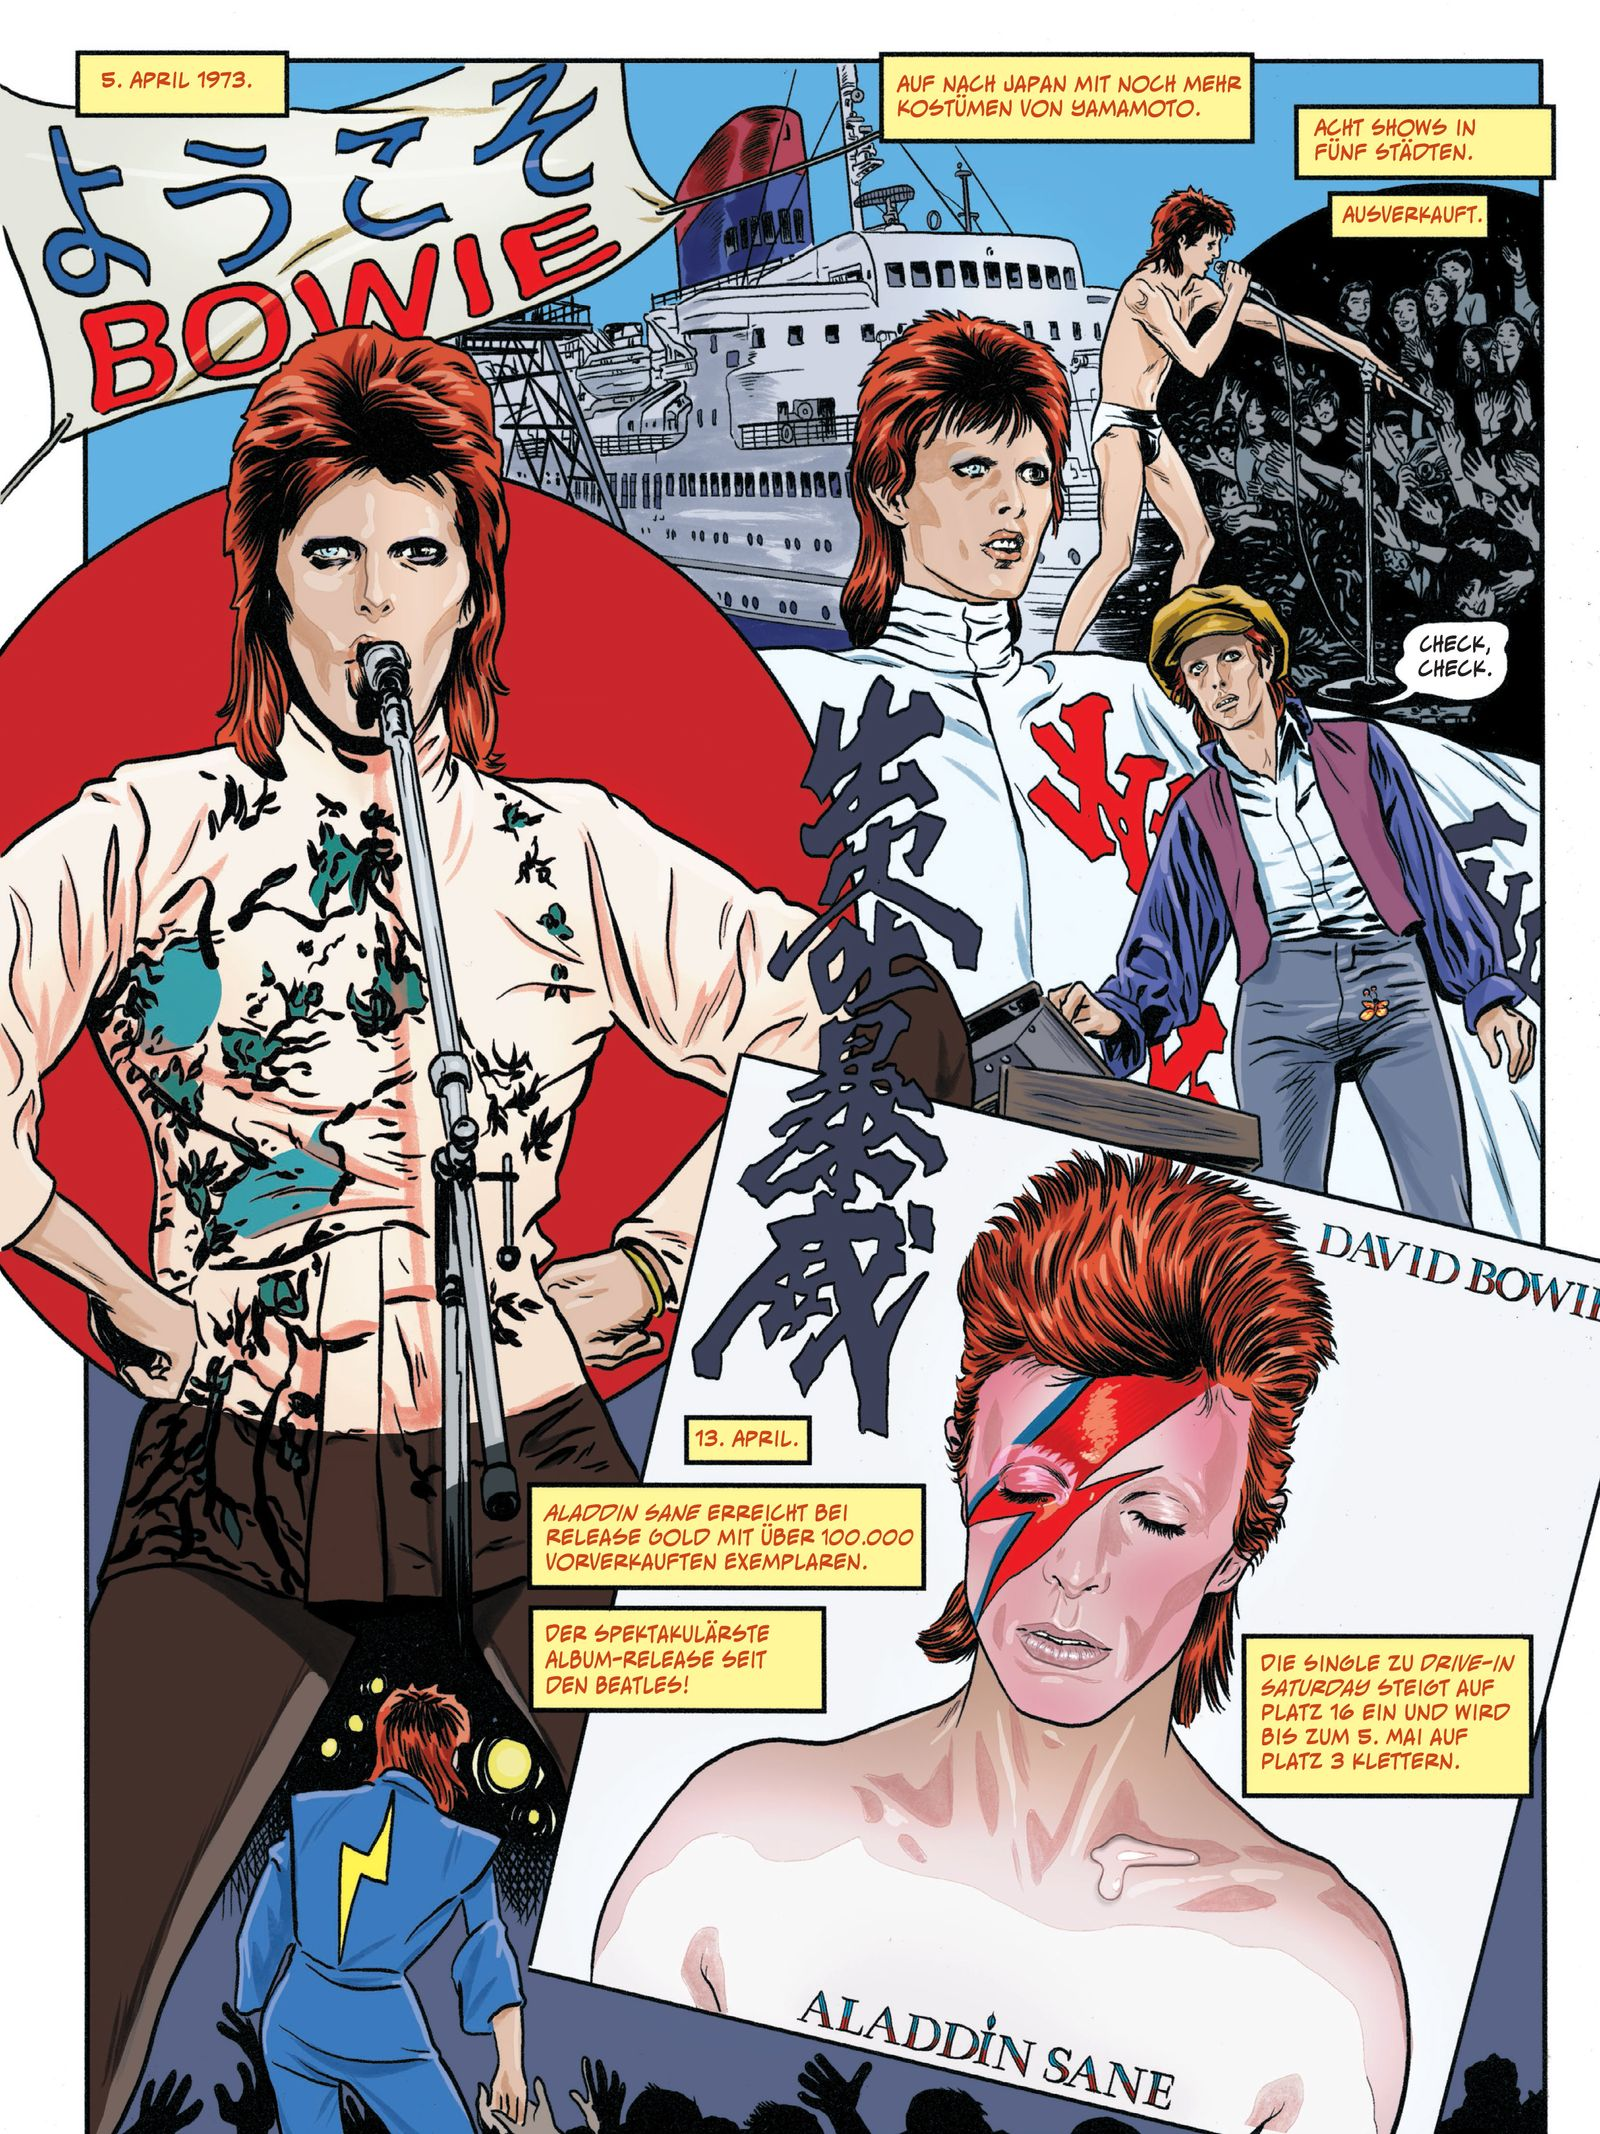 Bowie_SamplePages_119